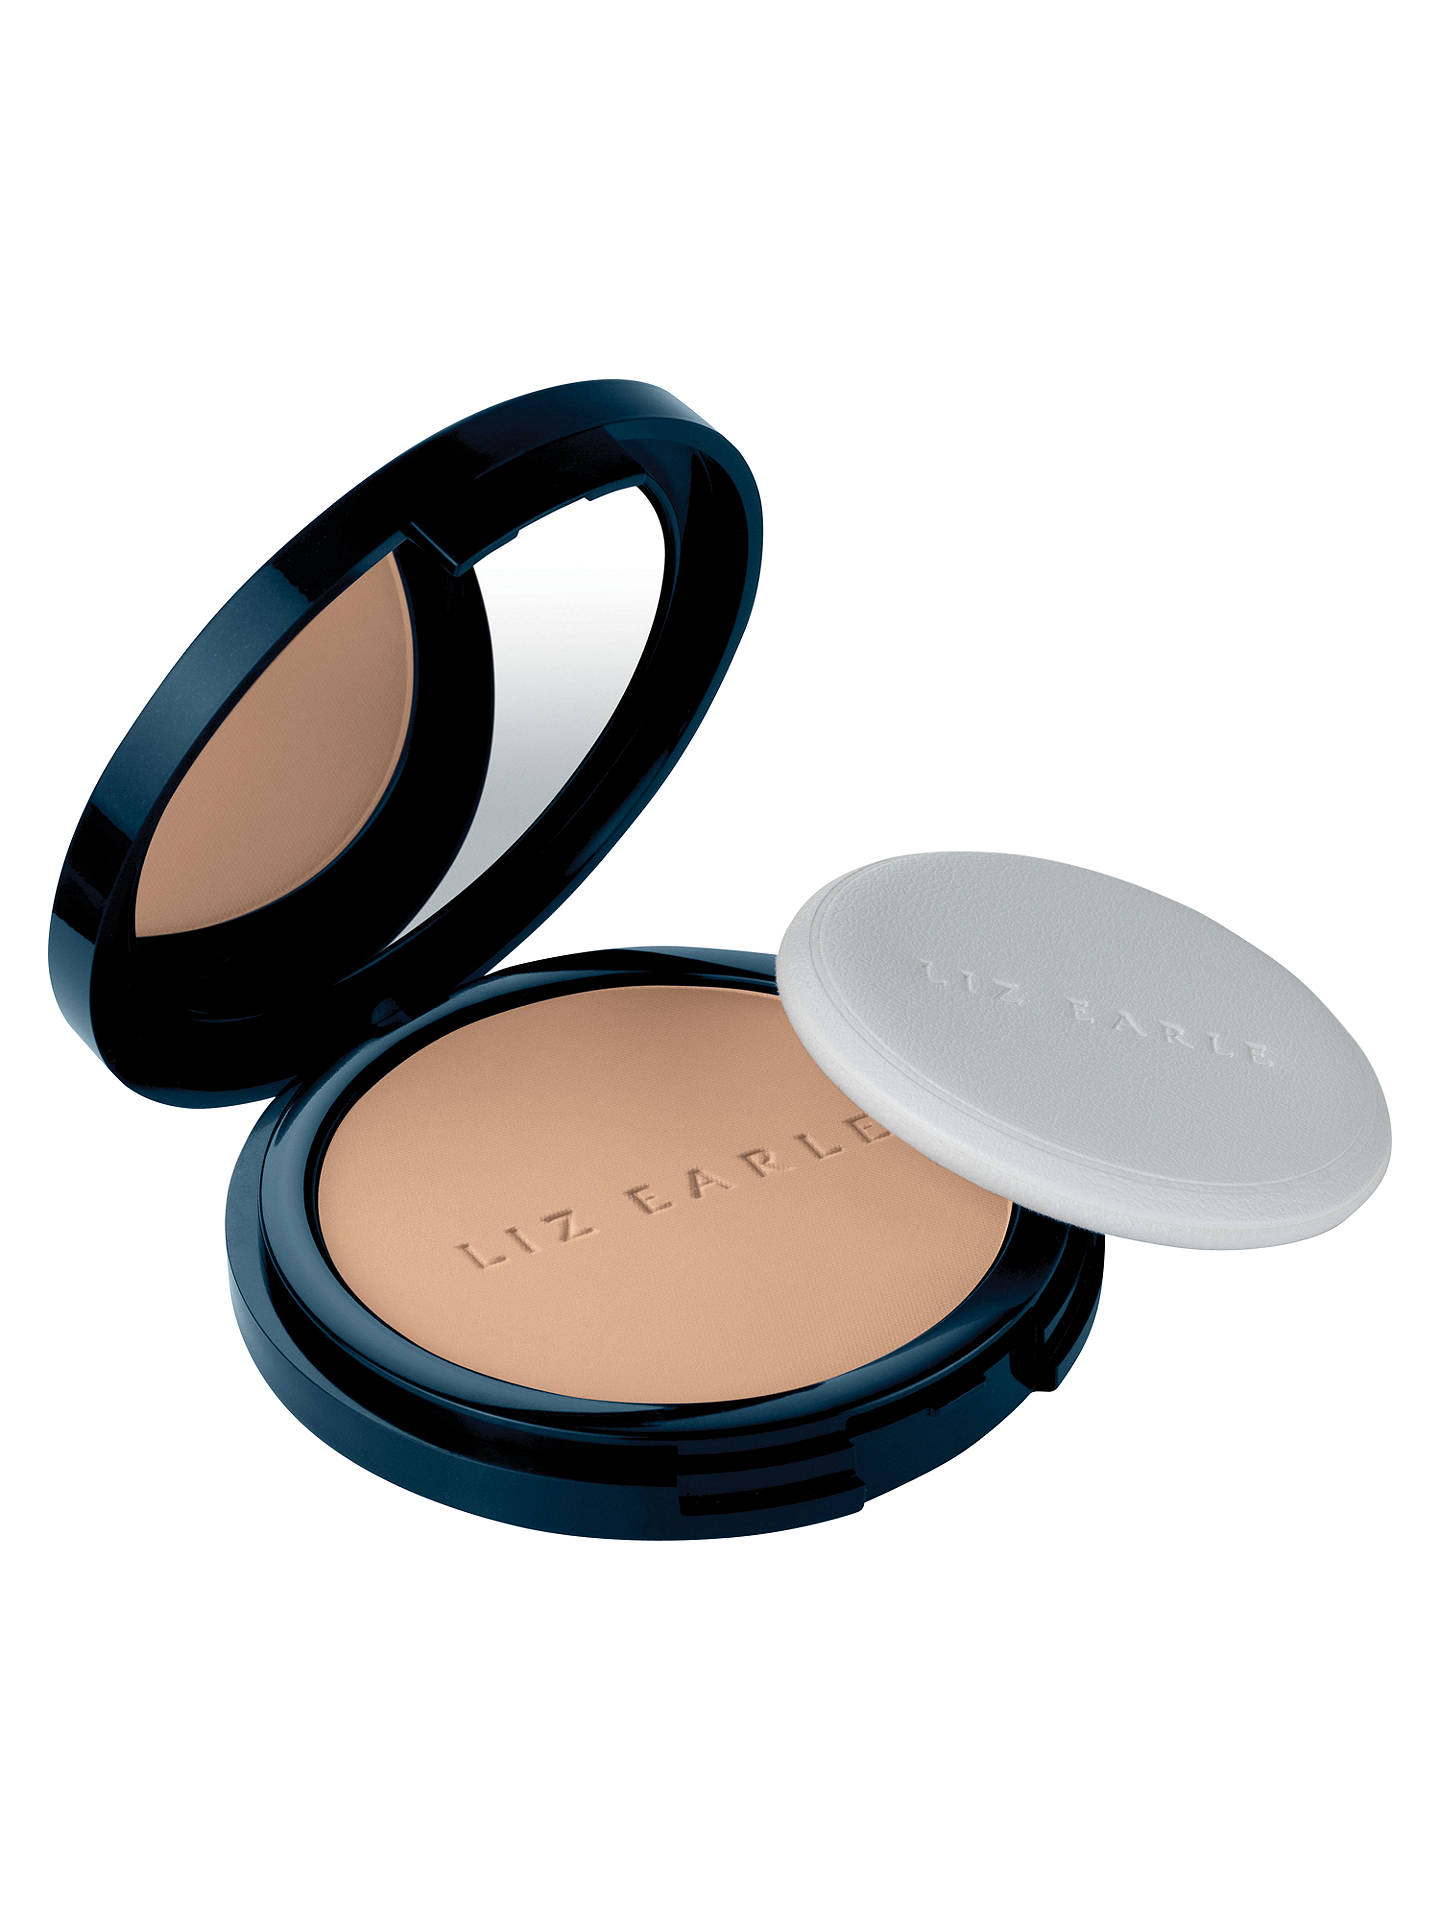 BuyLiz Earle Natural Finish Pressed Powder, 02 Sheer Ivory Online at johnlewis.com